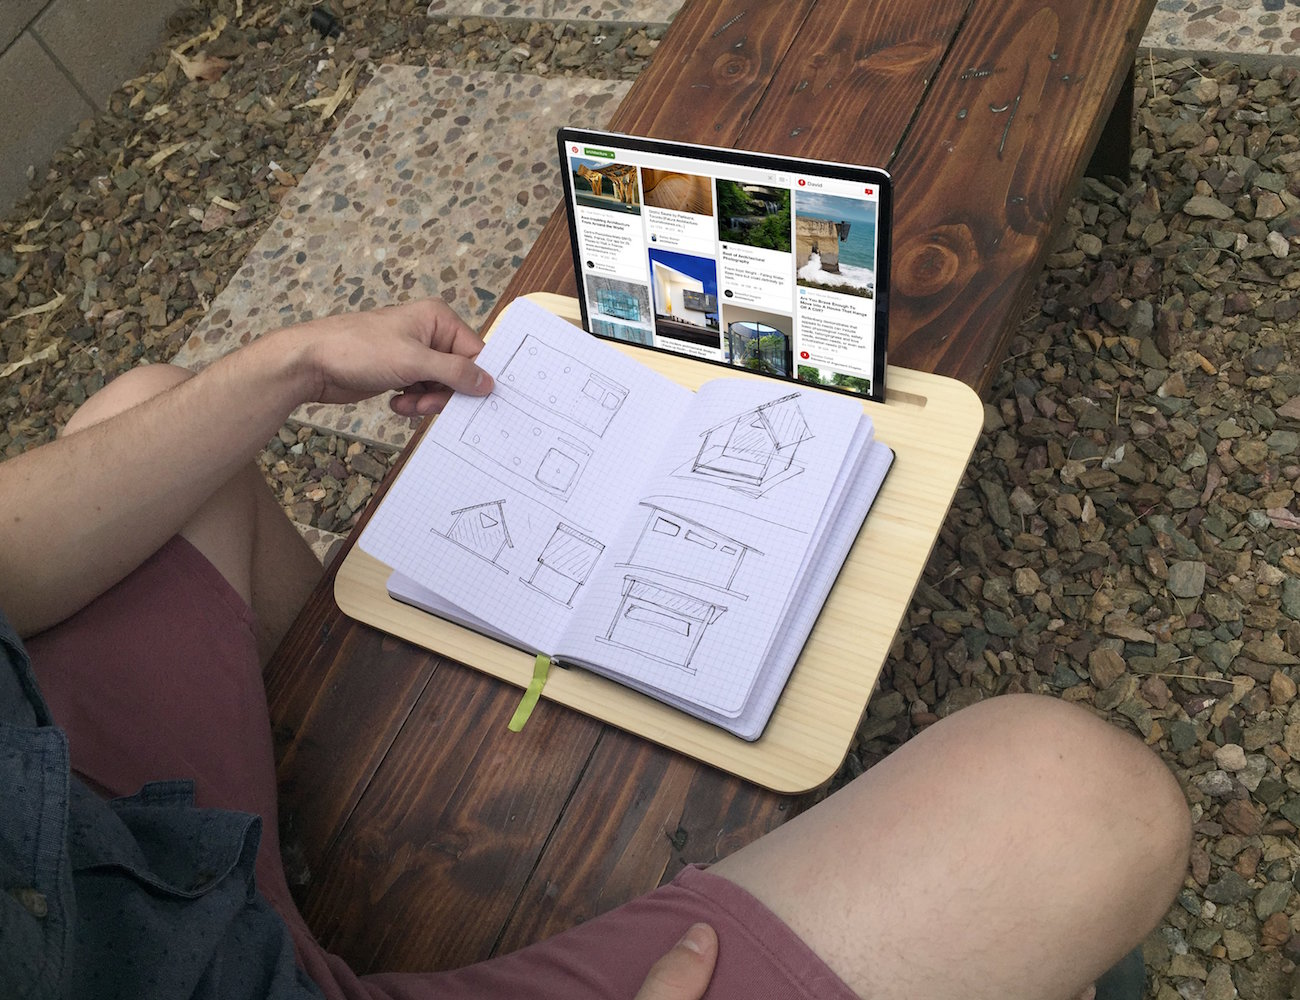 Tab LapDesk for Tablets and Smartphones by iSkelter